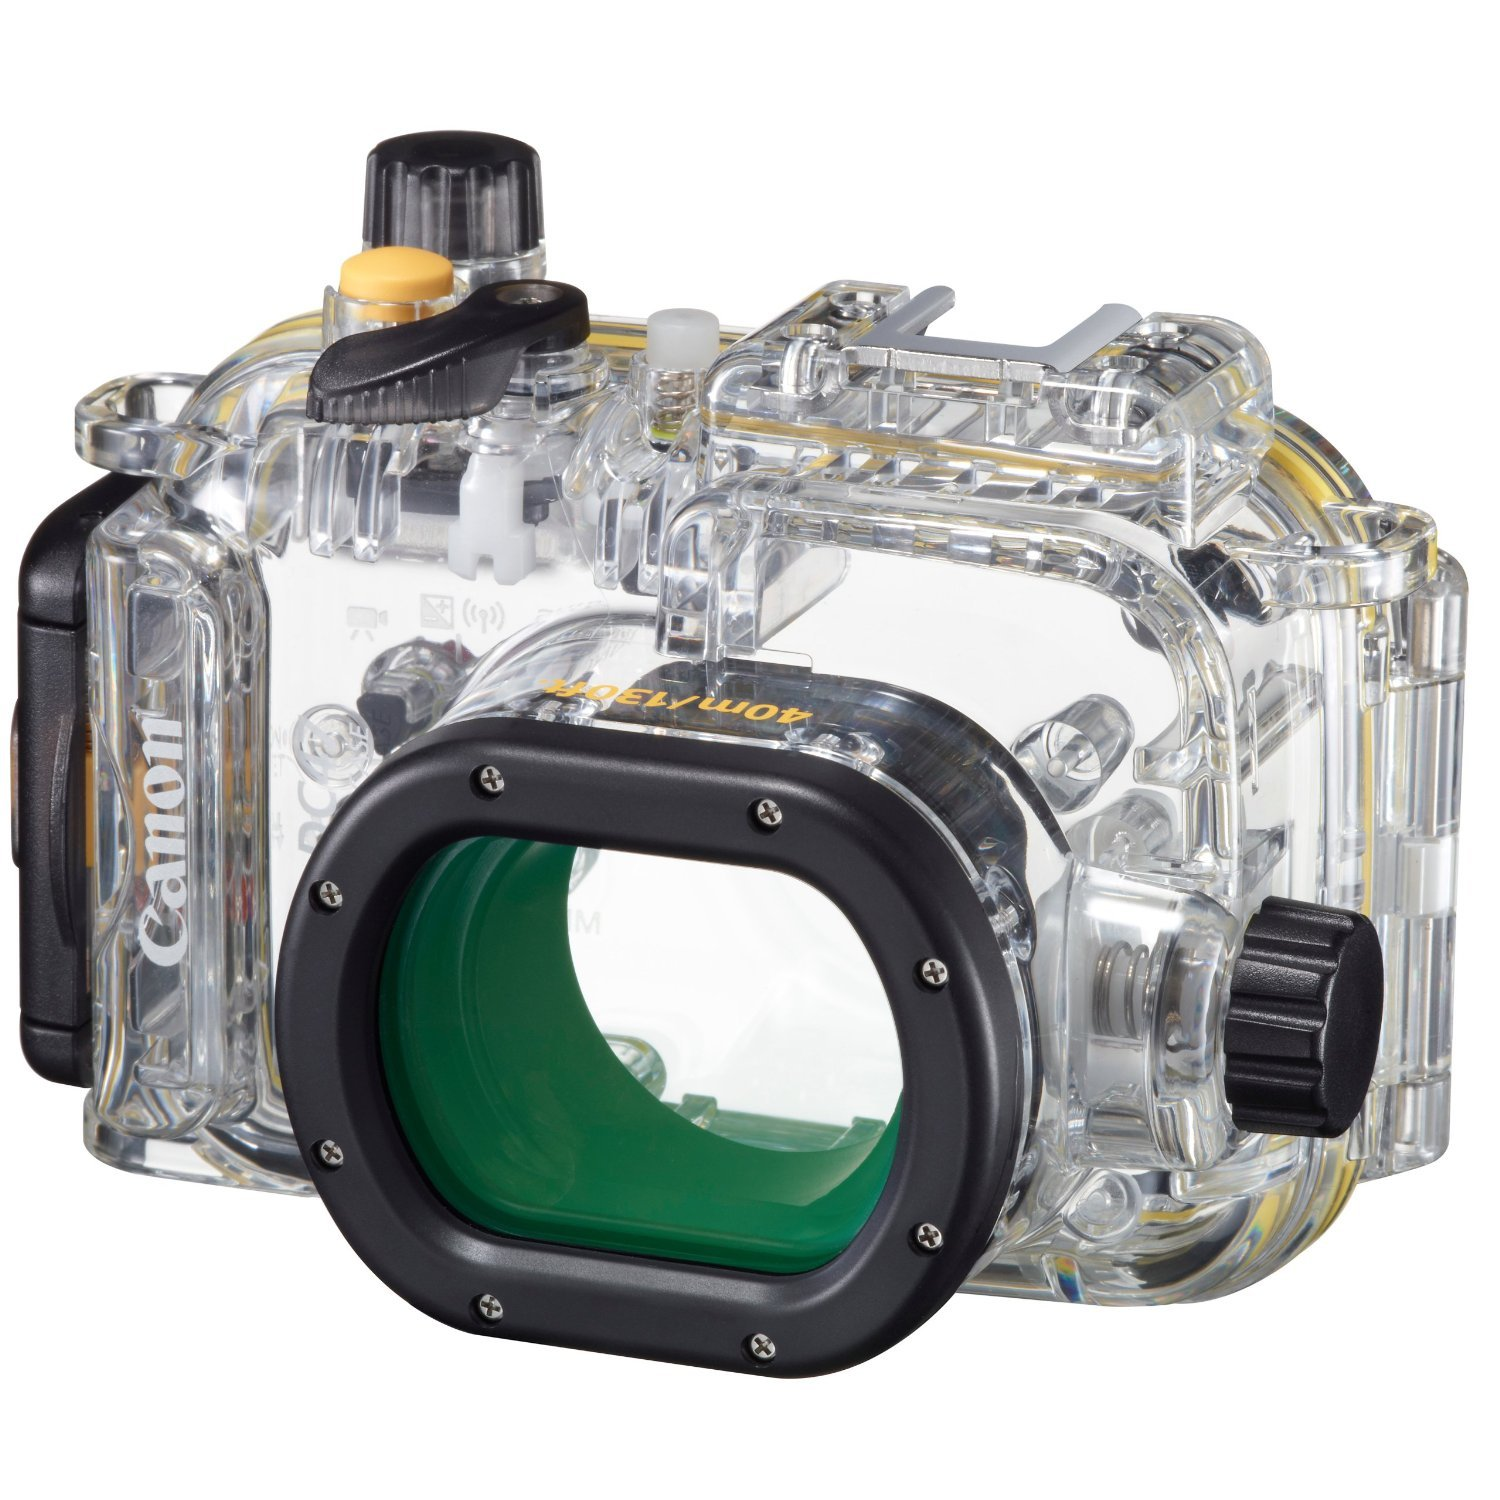 Canon Waterproof Case WP-DC47 for PowerShot S110